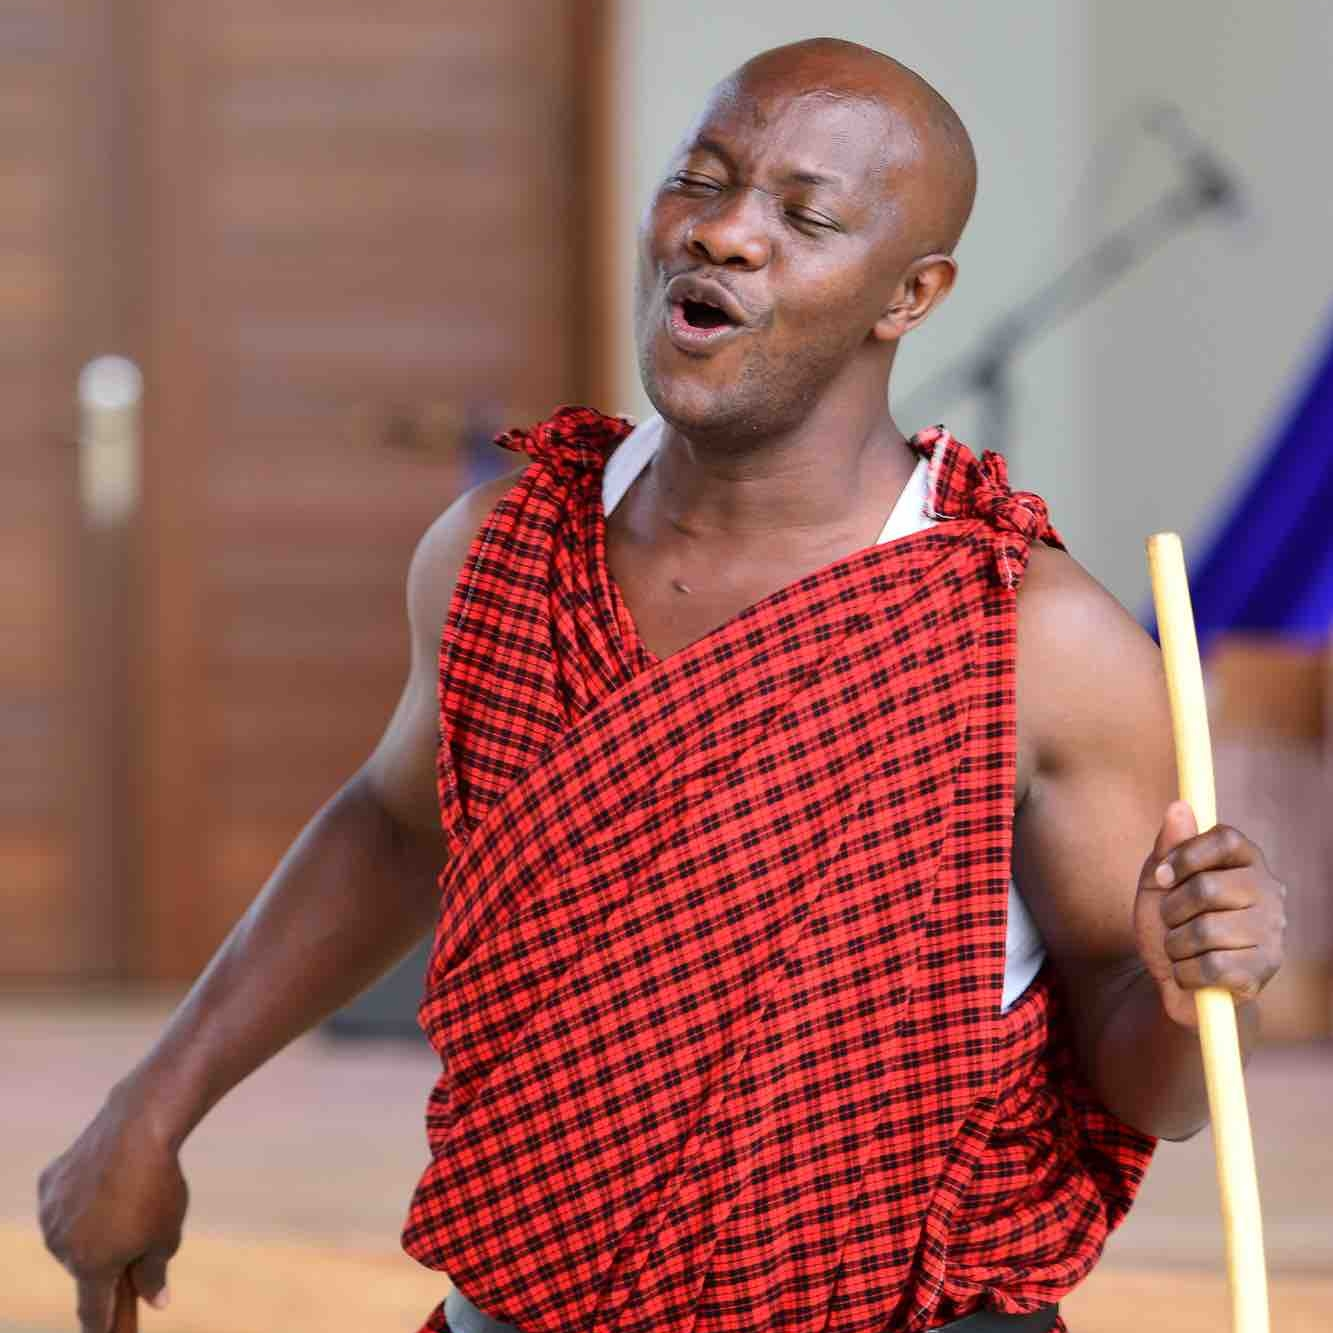 GABRIEL OLODI - Research TeamOlodi has a Bachelor in Music Education from Tumaini University, Makumira, a diploma in performing arts from TaSUBa,and a certificate in primary teaching from Patandi Teachers College, Arusha. He also has a certificate in video editing and photography from the Kilimanjaro Film Institute (KFI), which he uses as part of the research team at the CAC. He specializes in Maasai traditional songs.